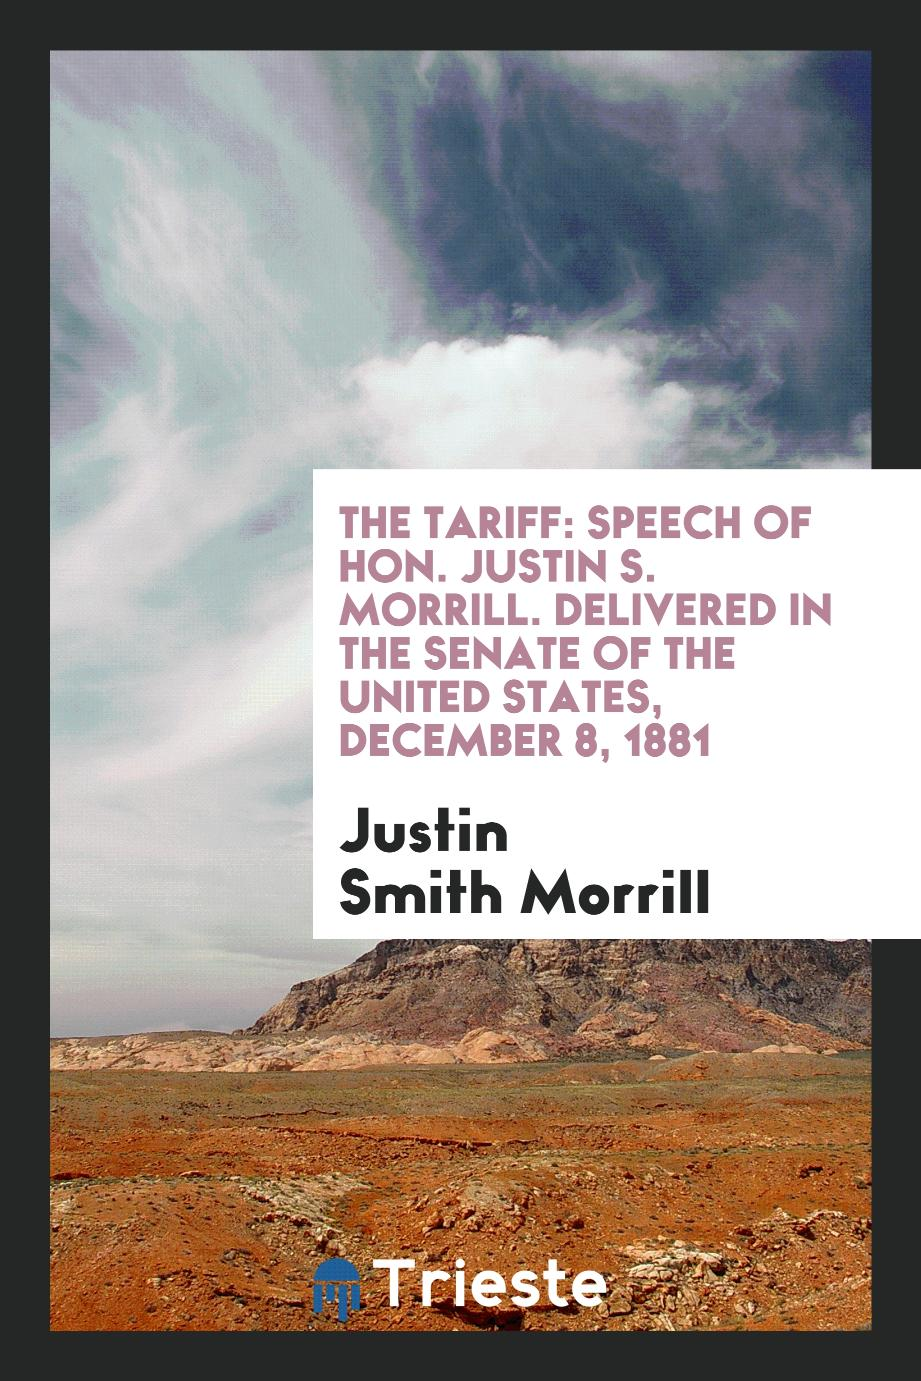 The Tariff: Speech of Hon. Justin S. Morrill. Delivered in the senate of the United states, December 8, 1881